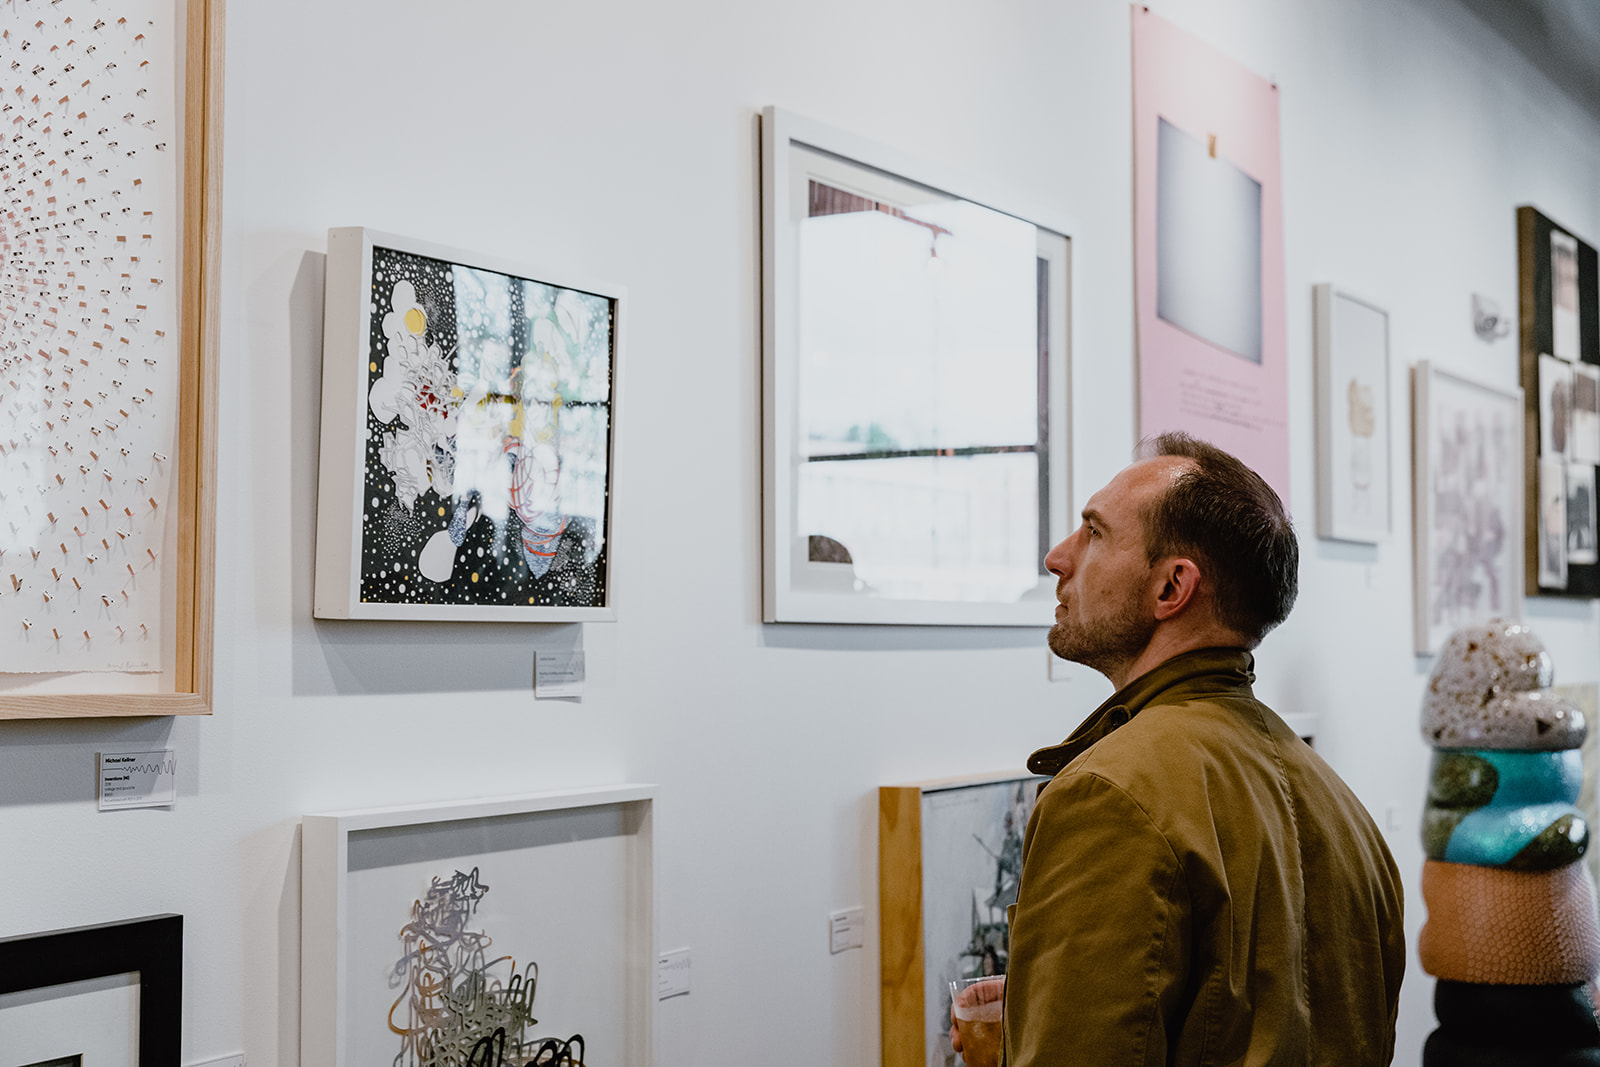 From the right: image of a man in a tan jacket with an amber drink in his hand looking up at the wall of artwork in front of him inside ROY G BIV Gallery. Some of the works are distorted by glare but we see a large variety of framed works hung in salon-style: where dozens of works are squeezed onto a wall in the manner of 19th century salons. Behind the man is a stacked ceramic sculptural work of bulbous creations ranging in texture from scaly to sparkly.